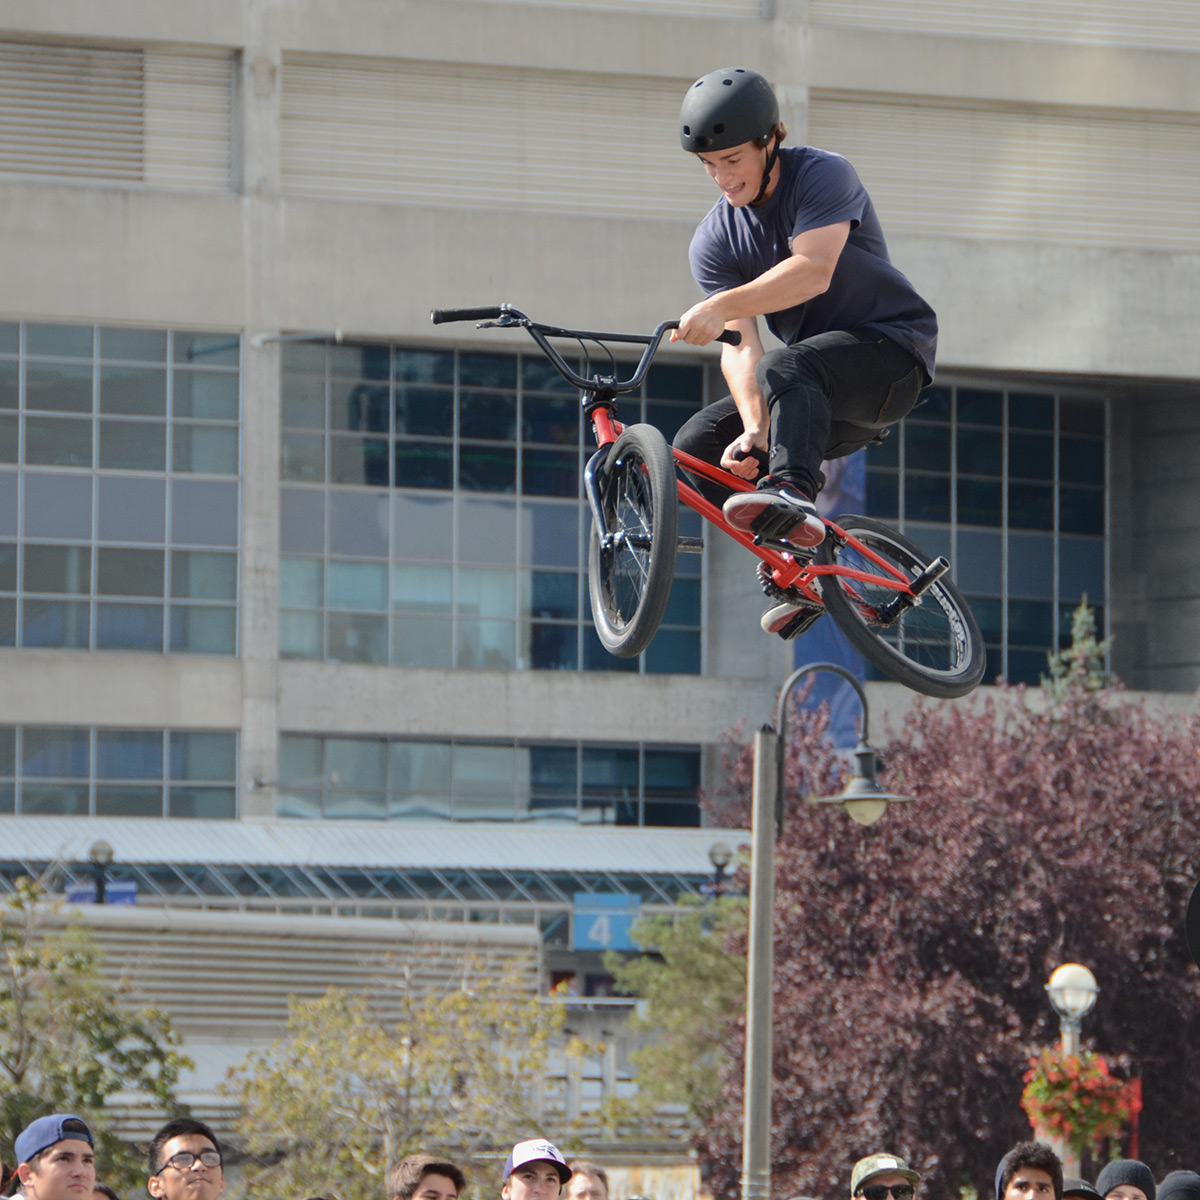 BMX Dew Tour Am Series in Toronto